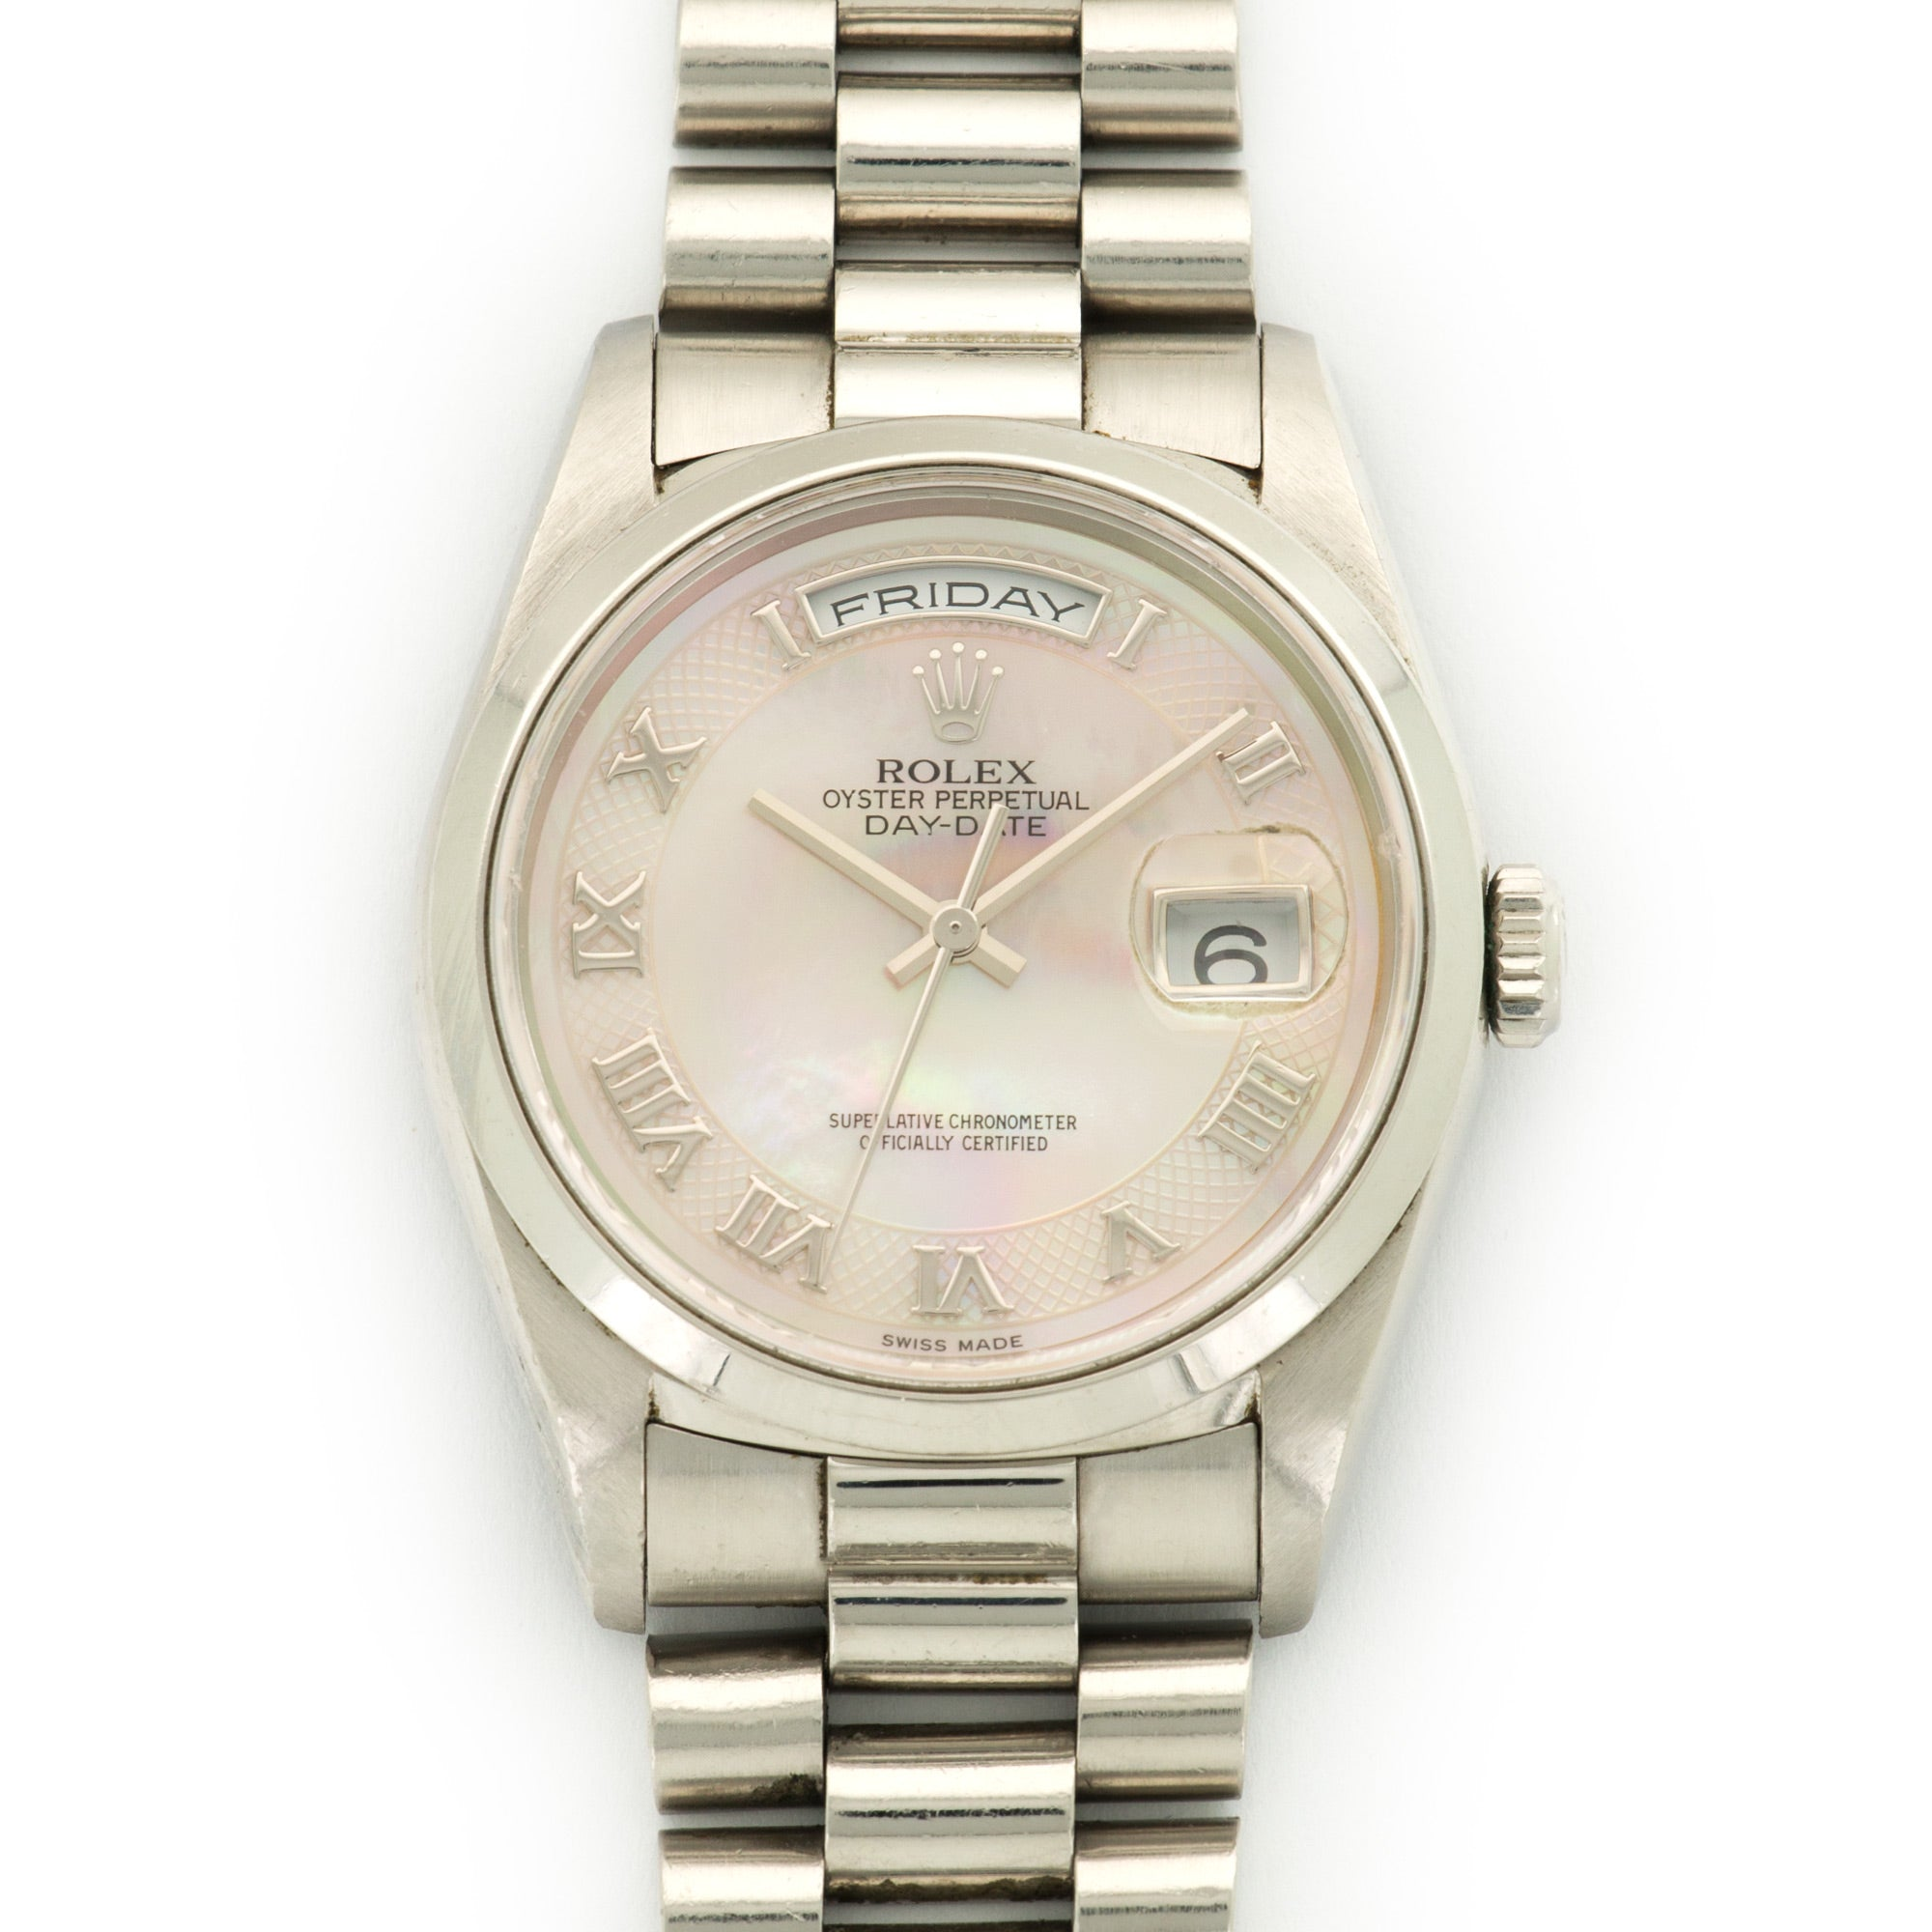 Rolex Day-Date 18206 Platinum  Likely Never Polished, Original Finish Unisex Platinum Pink Mother of Pearl with Roman Indexes 36mm Automatic 1999 Platinum Bracelet Handmade Leather Travel Pouch